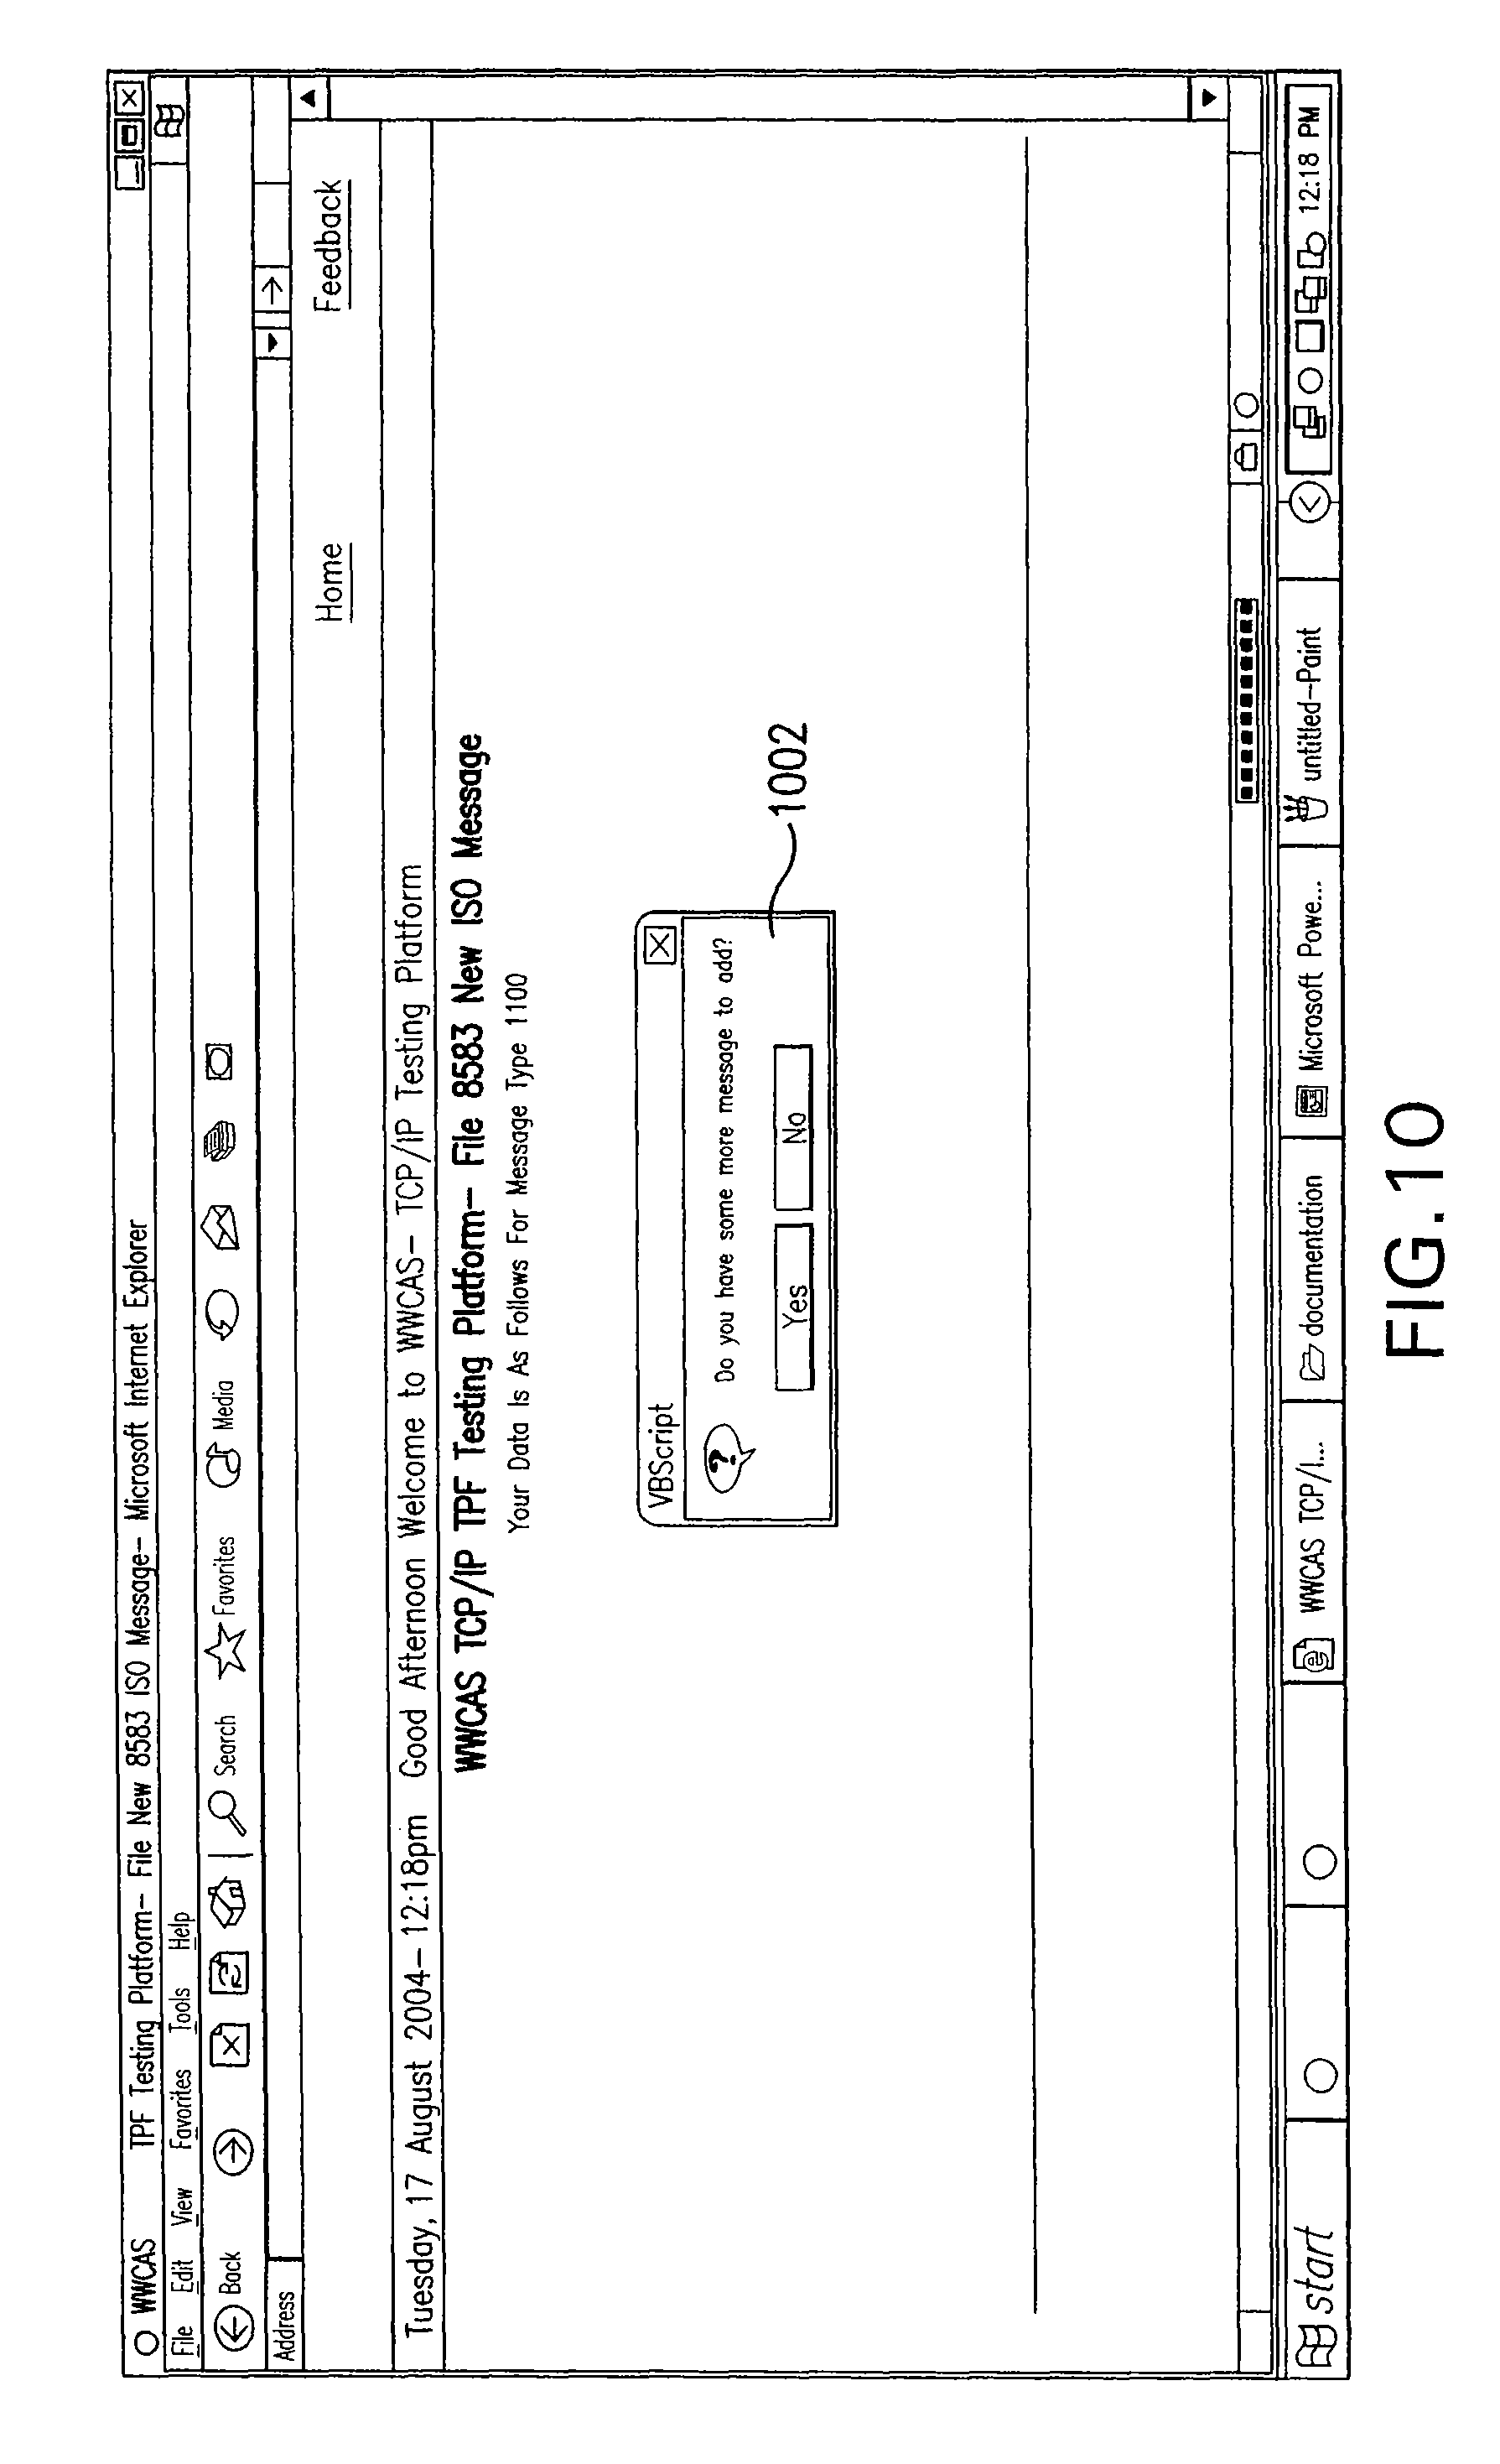 Patent US8335742 - Method, system, and computer program product for